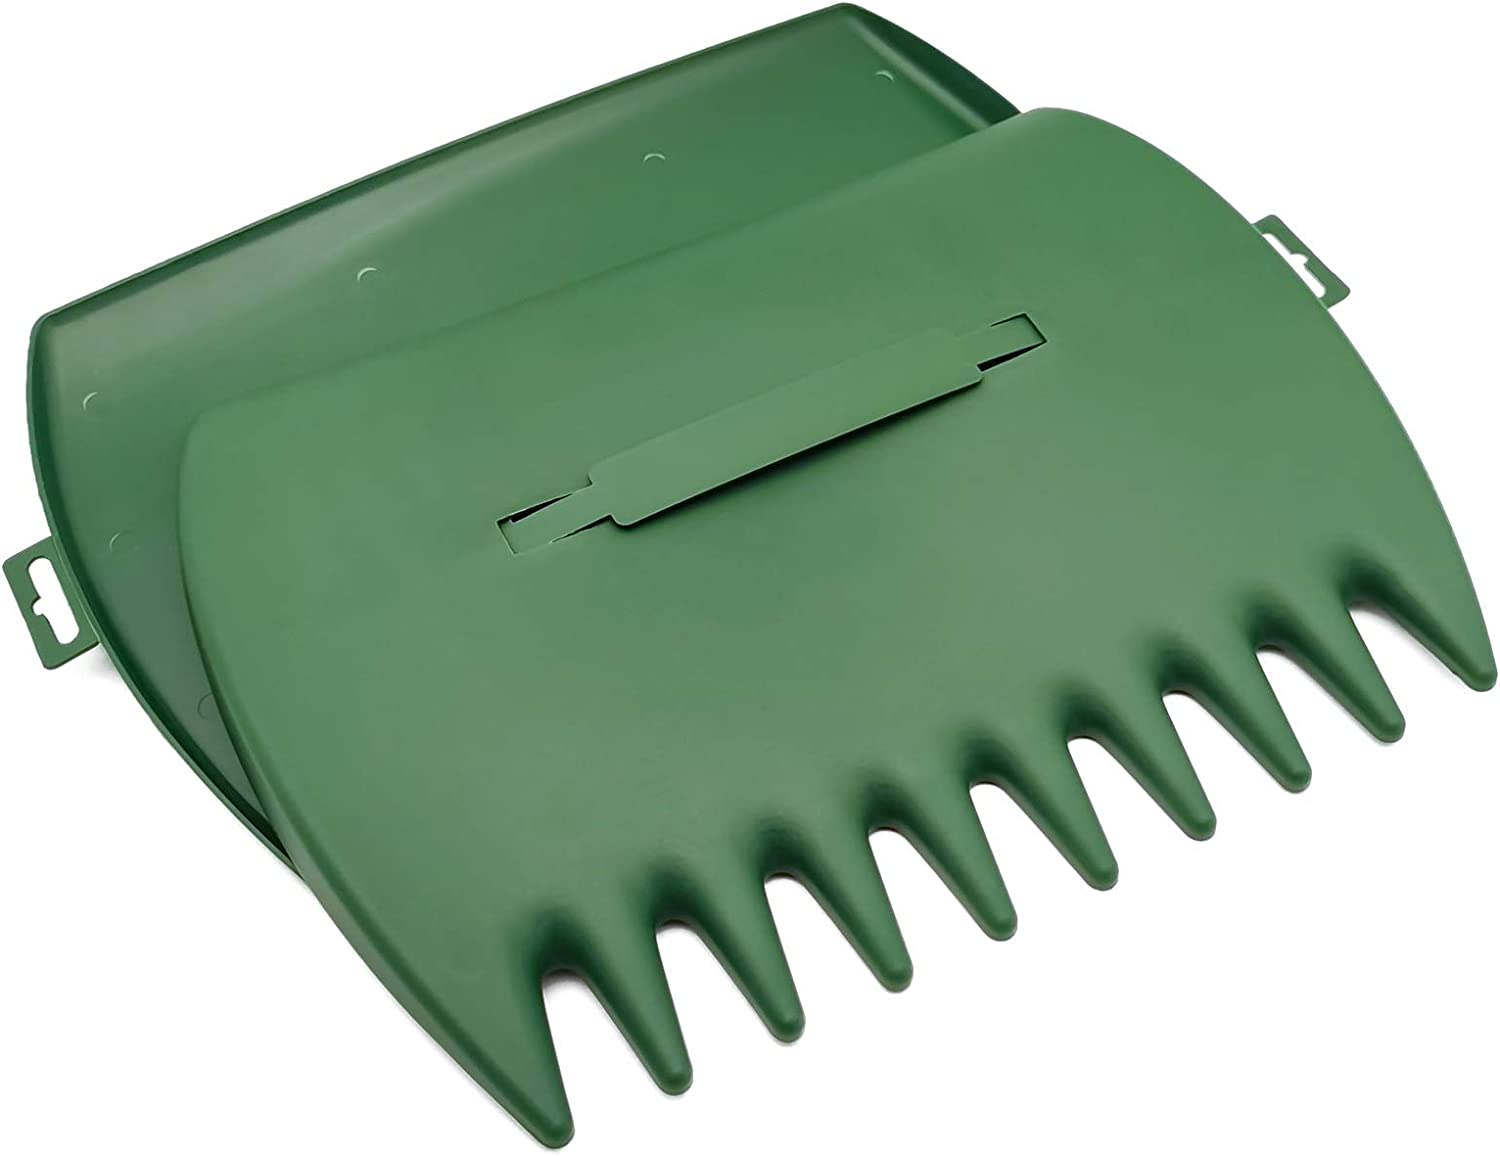 Nonemey Leaf Scoops Garden and Yard Hand Rakes Leaf Claws with Adjustable Handles for Leaves, Lawn and Trash Pick-Up,Gardenised Pair of Leaf Scoops, Hand Rakes for Lawn and Garden Cleanup (Green)